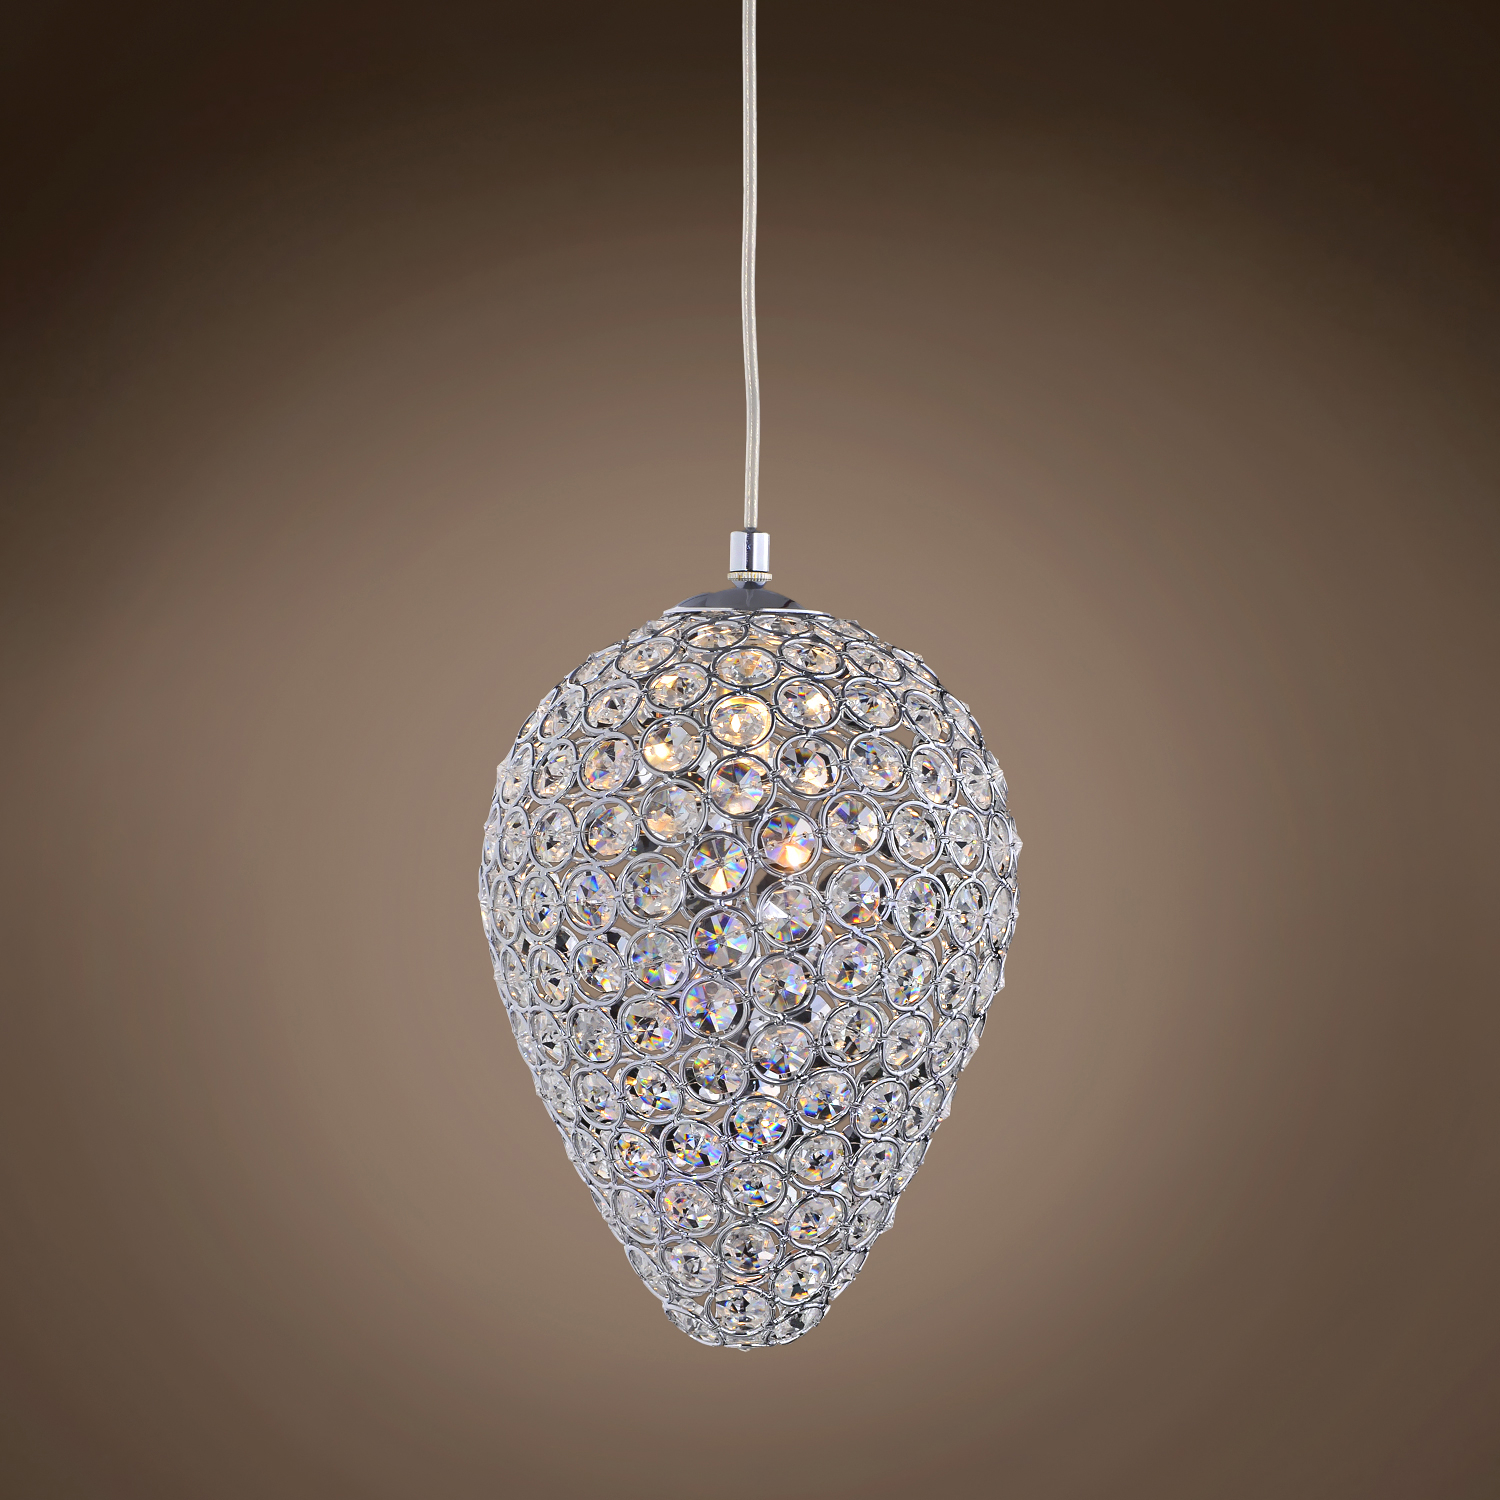 "Jm Limited Edition 1 Light 6"" Teardrop Crystal Mini Pendant Light In Chrome Finish Pertaining To Newest Sparkling Teardrop Chandelier Pendant Necklaces (View 11 of 25)"